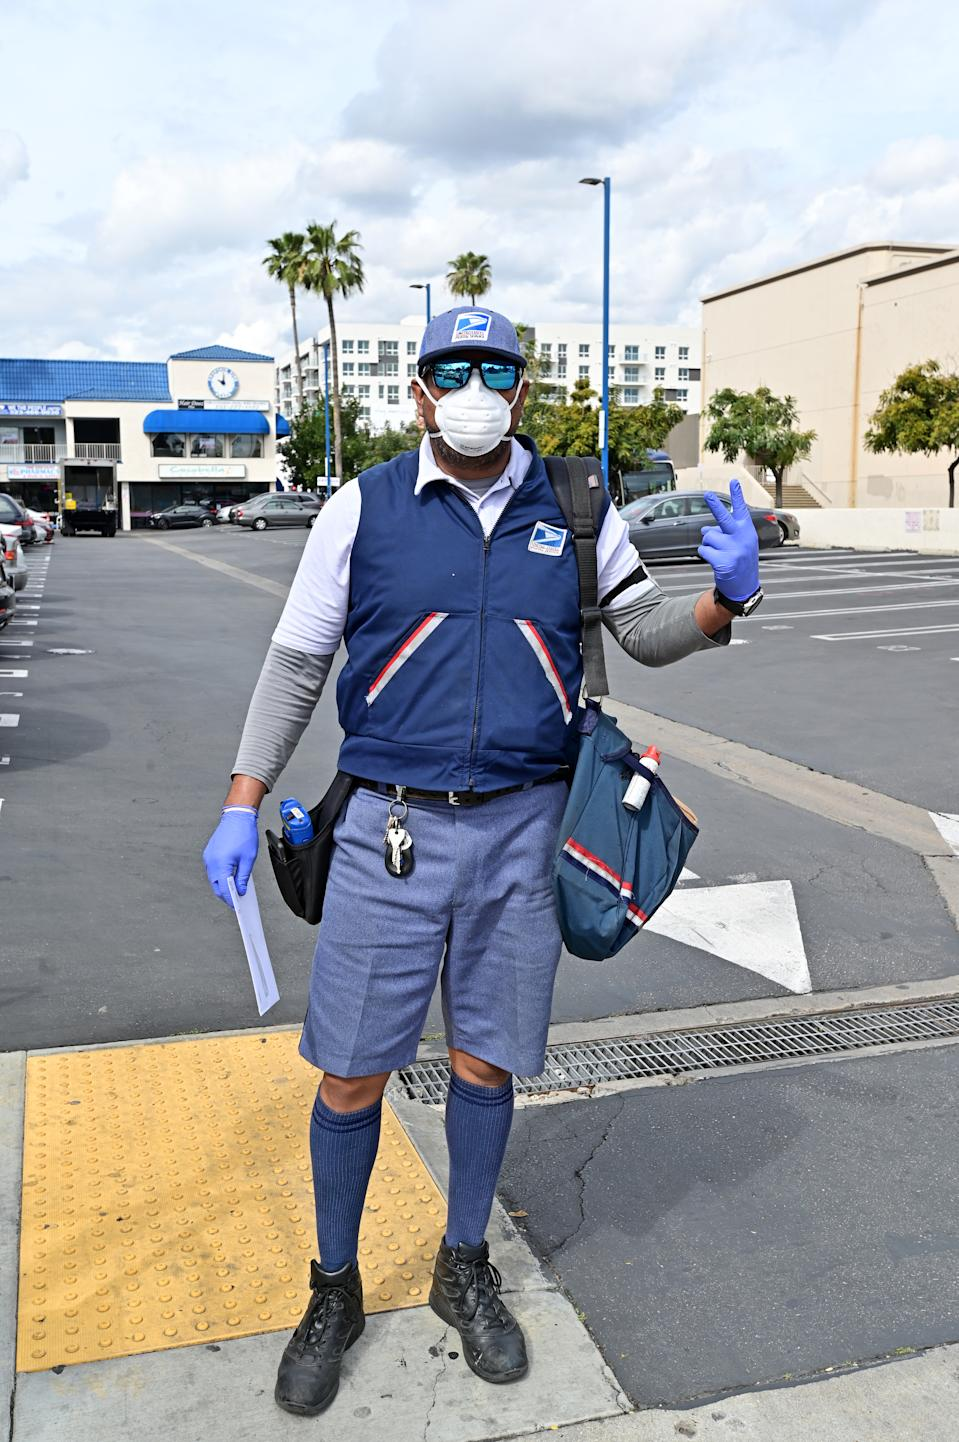 A Hollywood postal worker, dressed in protective mask and gloves, delivers the mail in Hollywood on Friday March 20th.. (Photo by Stephen Albanese/Michael Ochs Archives/Getty Images)